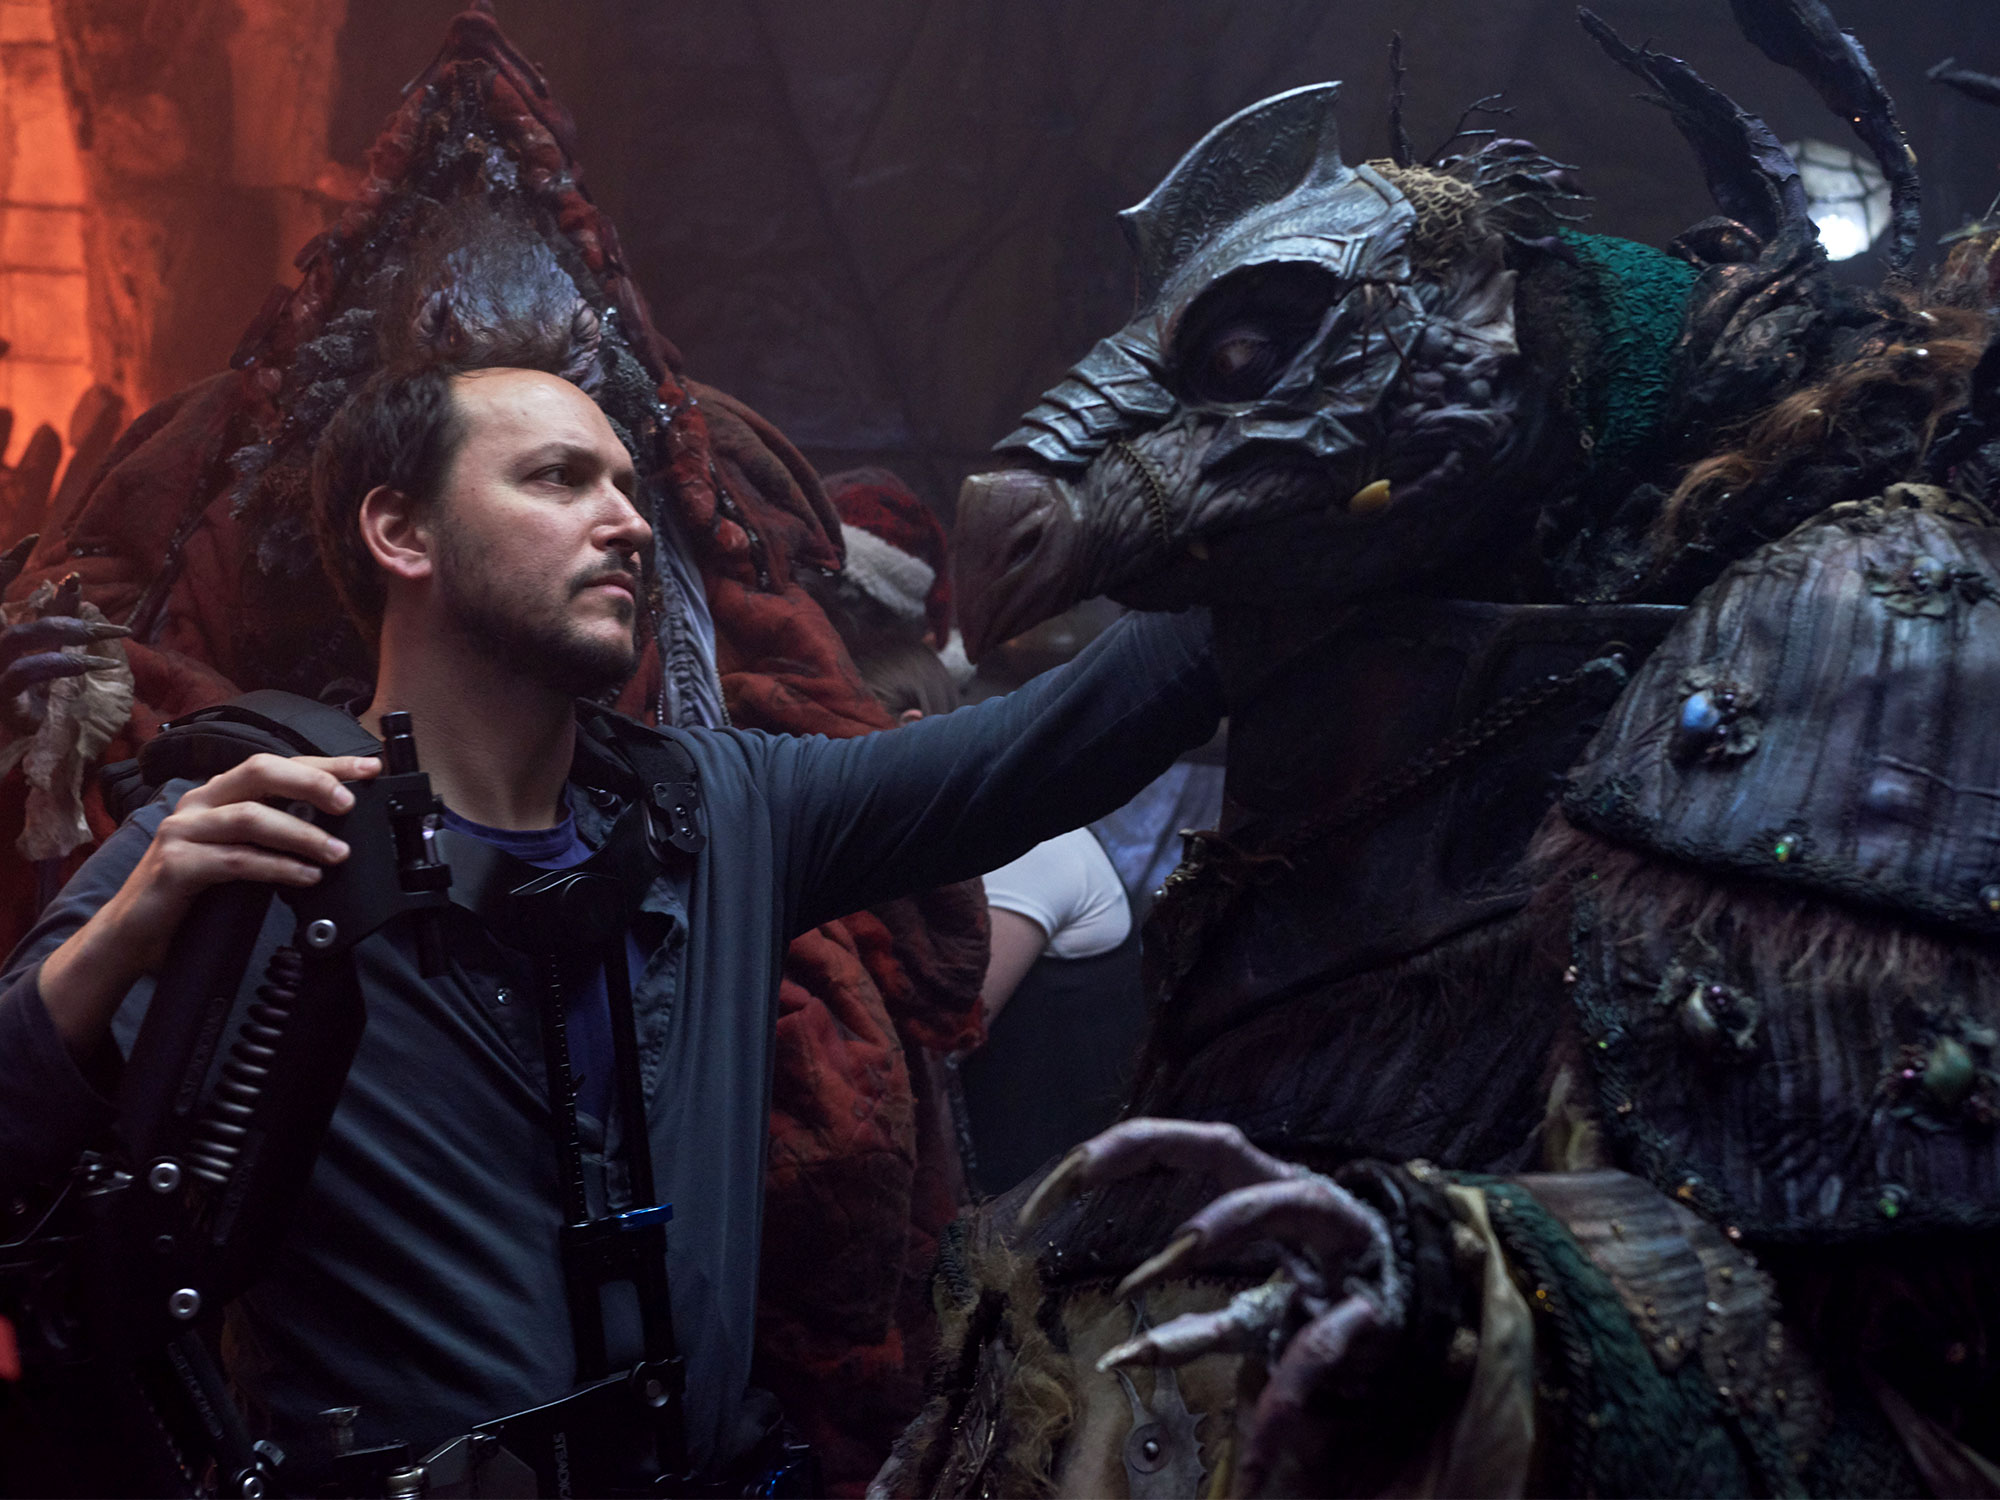 Louis Leterrier on realising a lifelong dream with The Dark Crystal: Age of Resistance